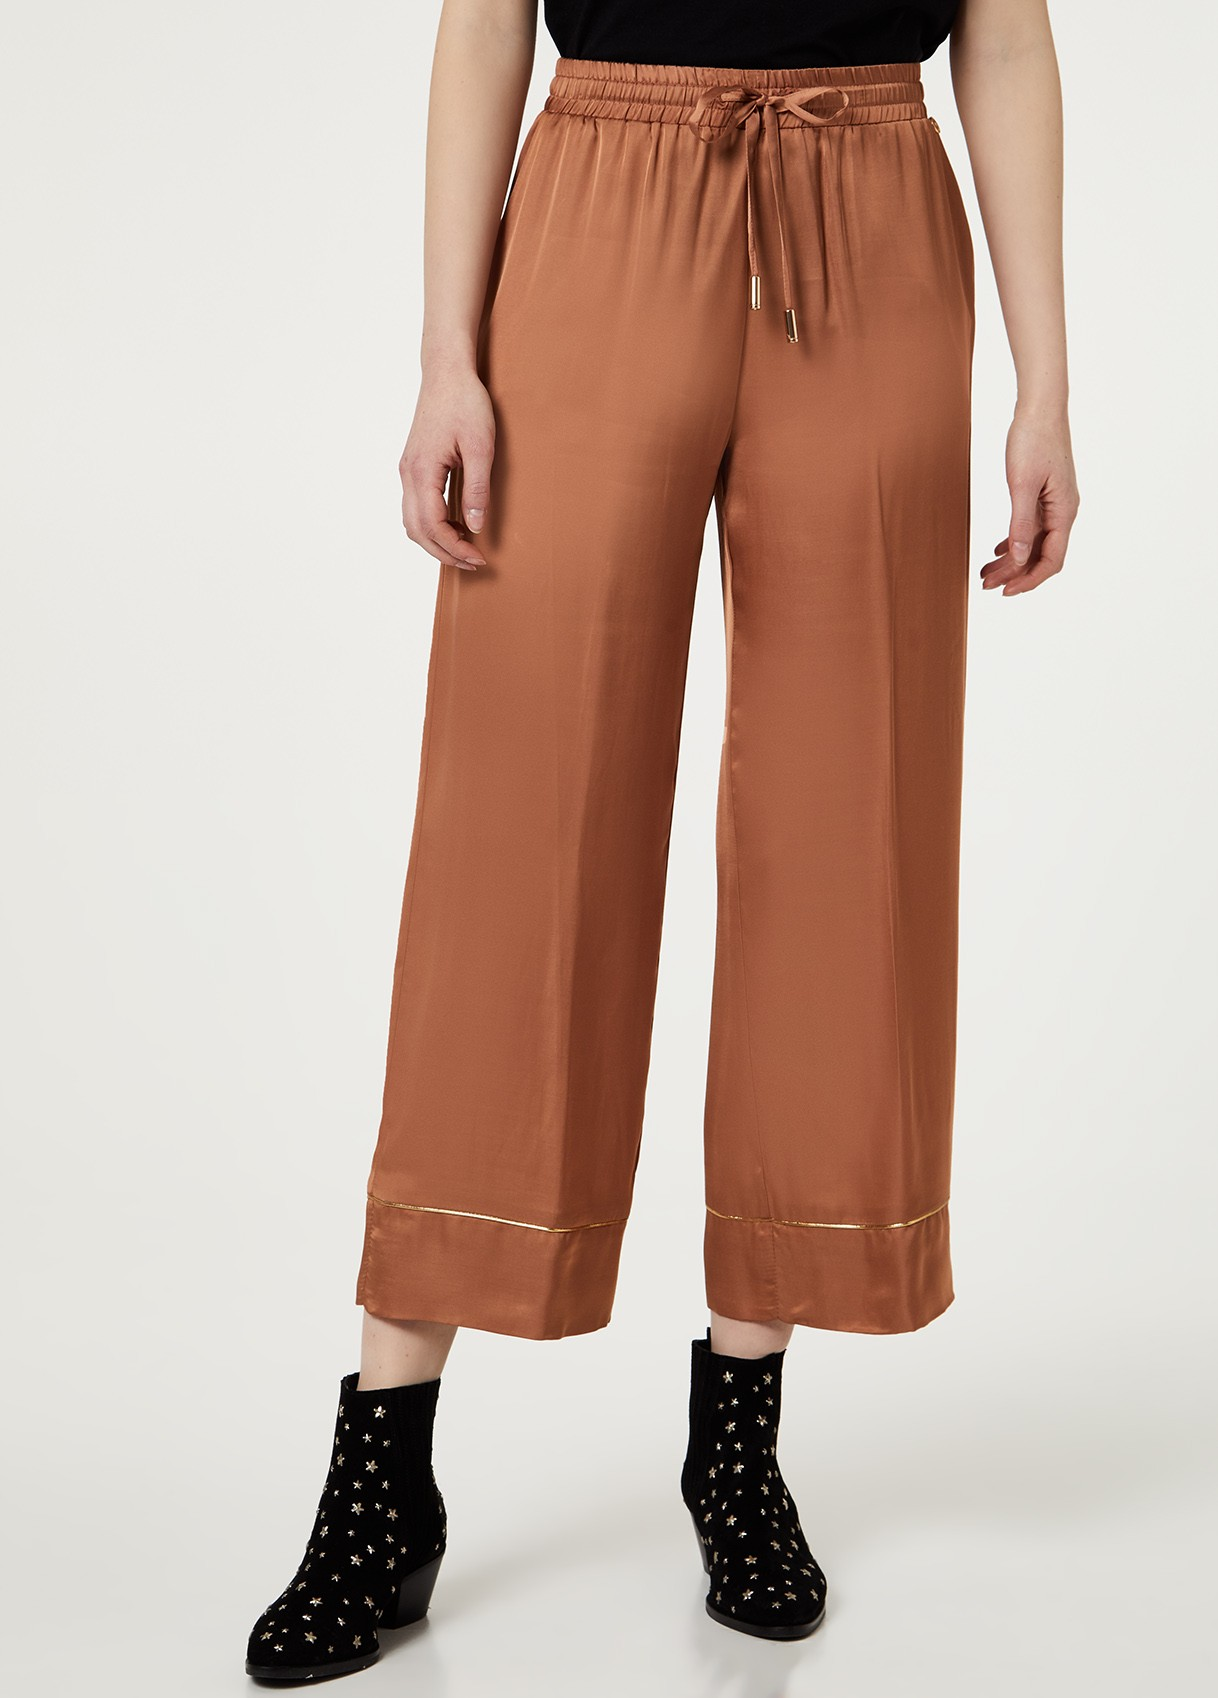 LIU JO PANTALONE JOGGING LARGO CROPPED CARAMEL LIGHT